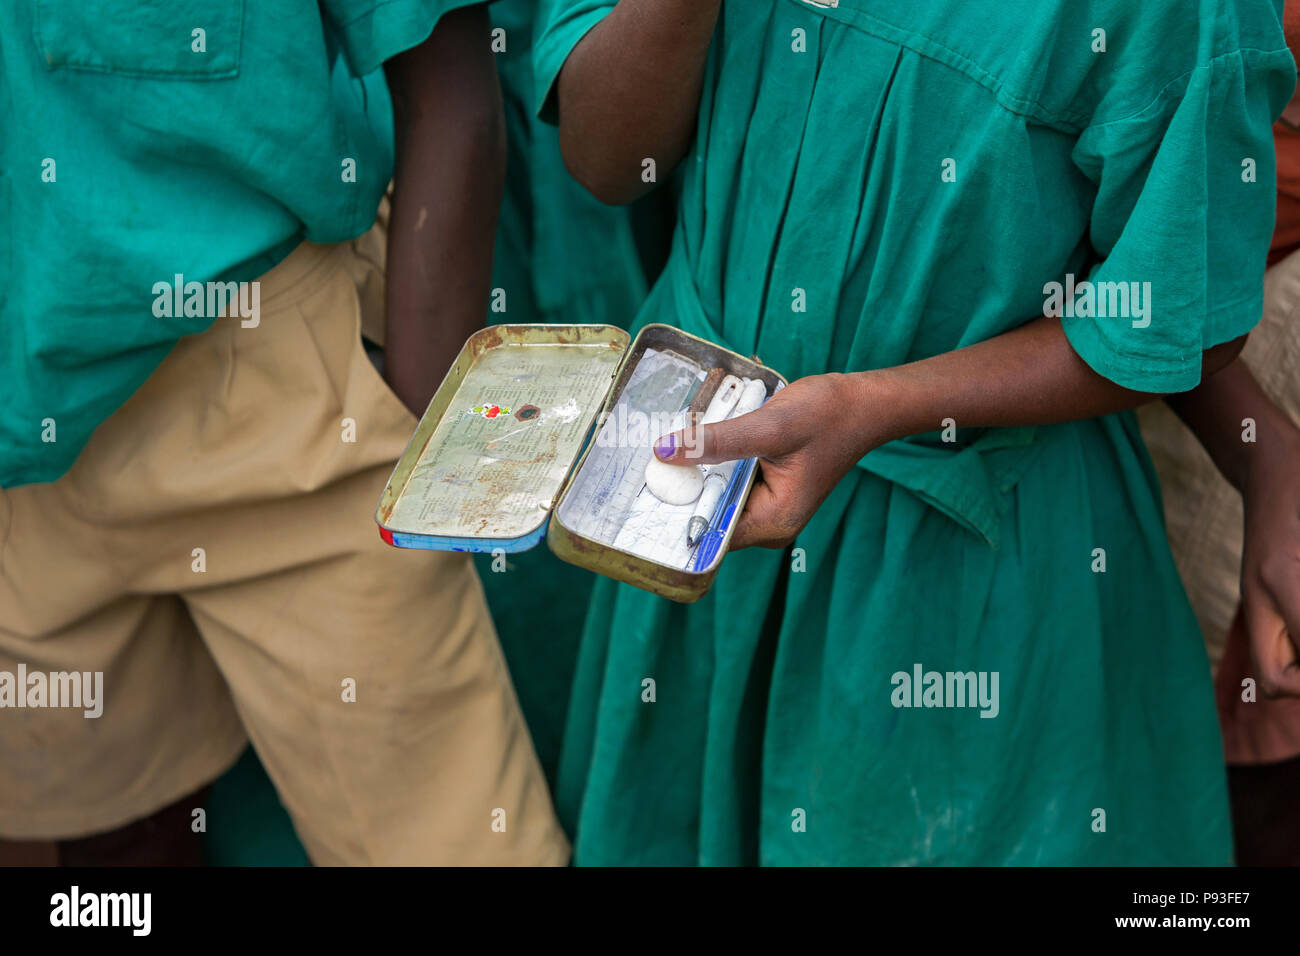 Bombo, Uganda - St. Joseph's Bombo mixed primary school. Ballpoint pen and ruler in an open pencil case made of sheet metal. - Stock Image